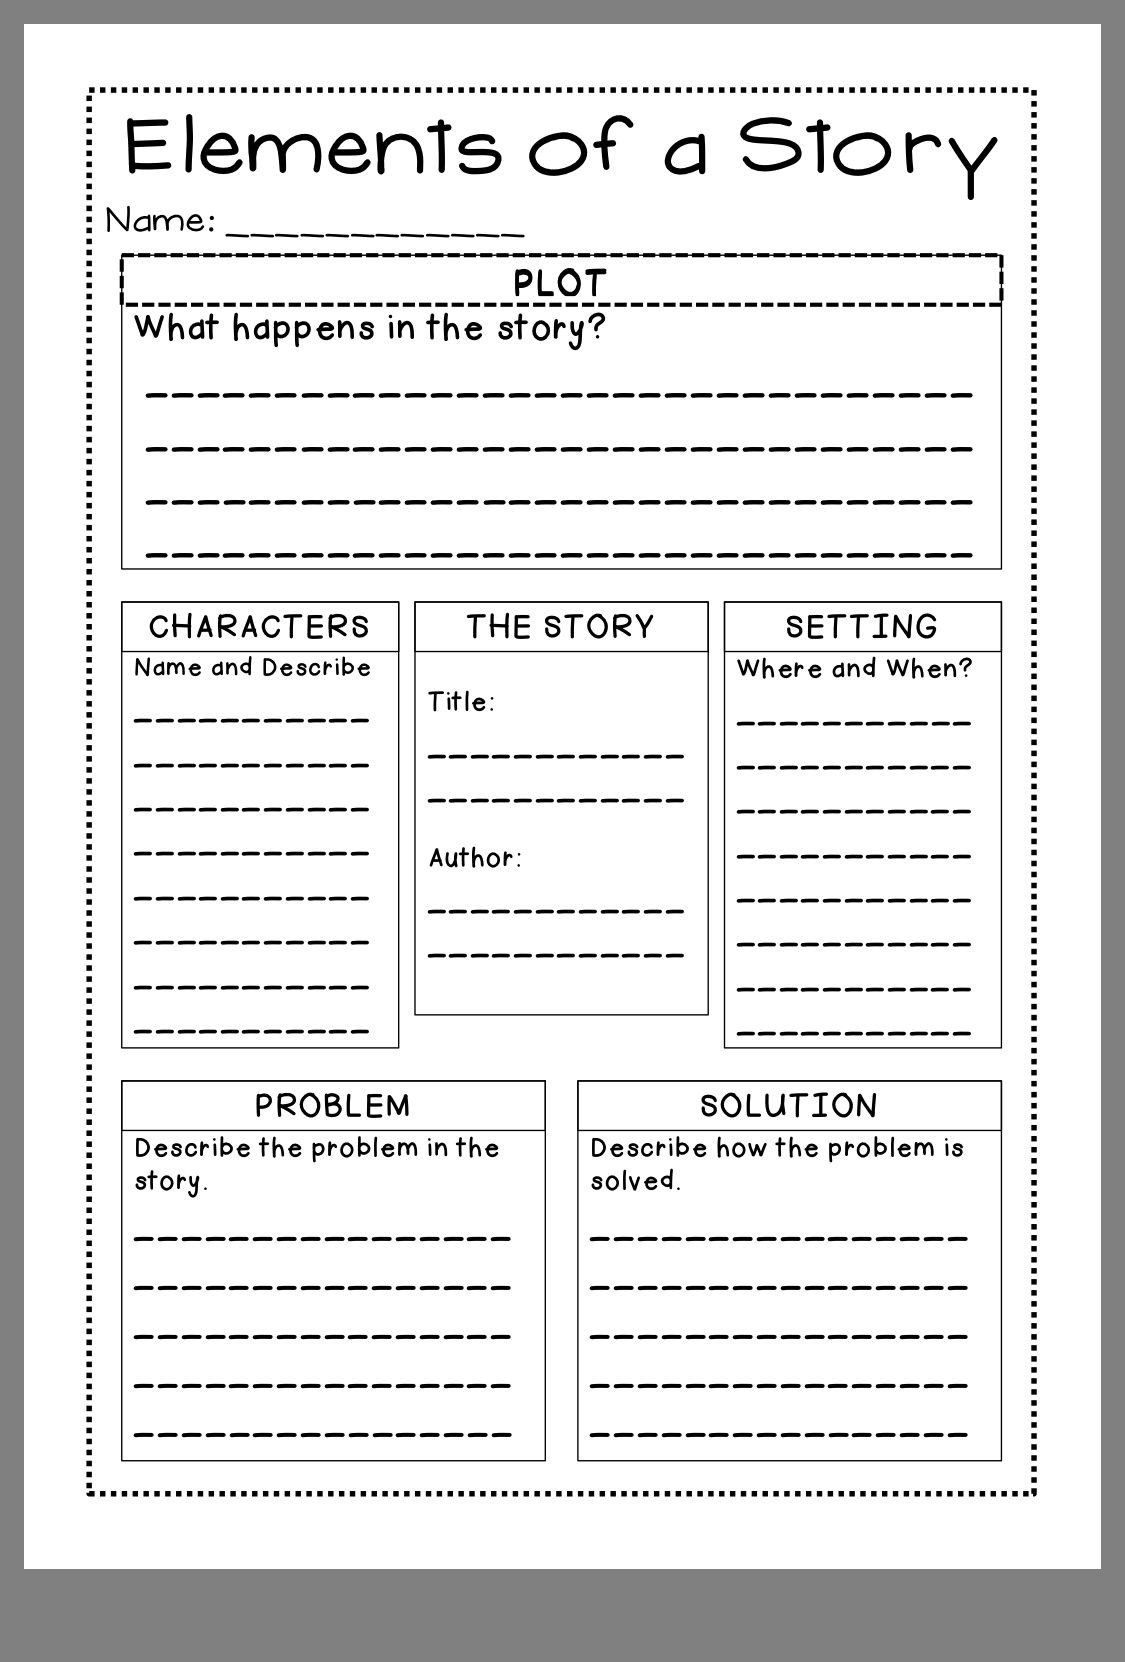 Story Elements Worksheet 4th Grade Pin by Jill Brewington On Story Elements    Story elements worksheet [ 1662 x 1125 Pixel ]